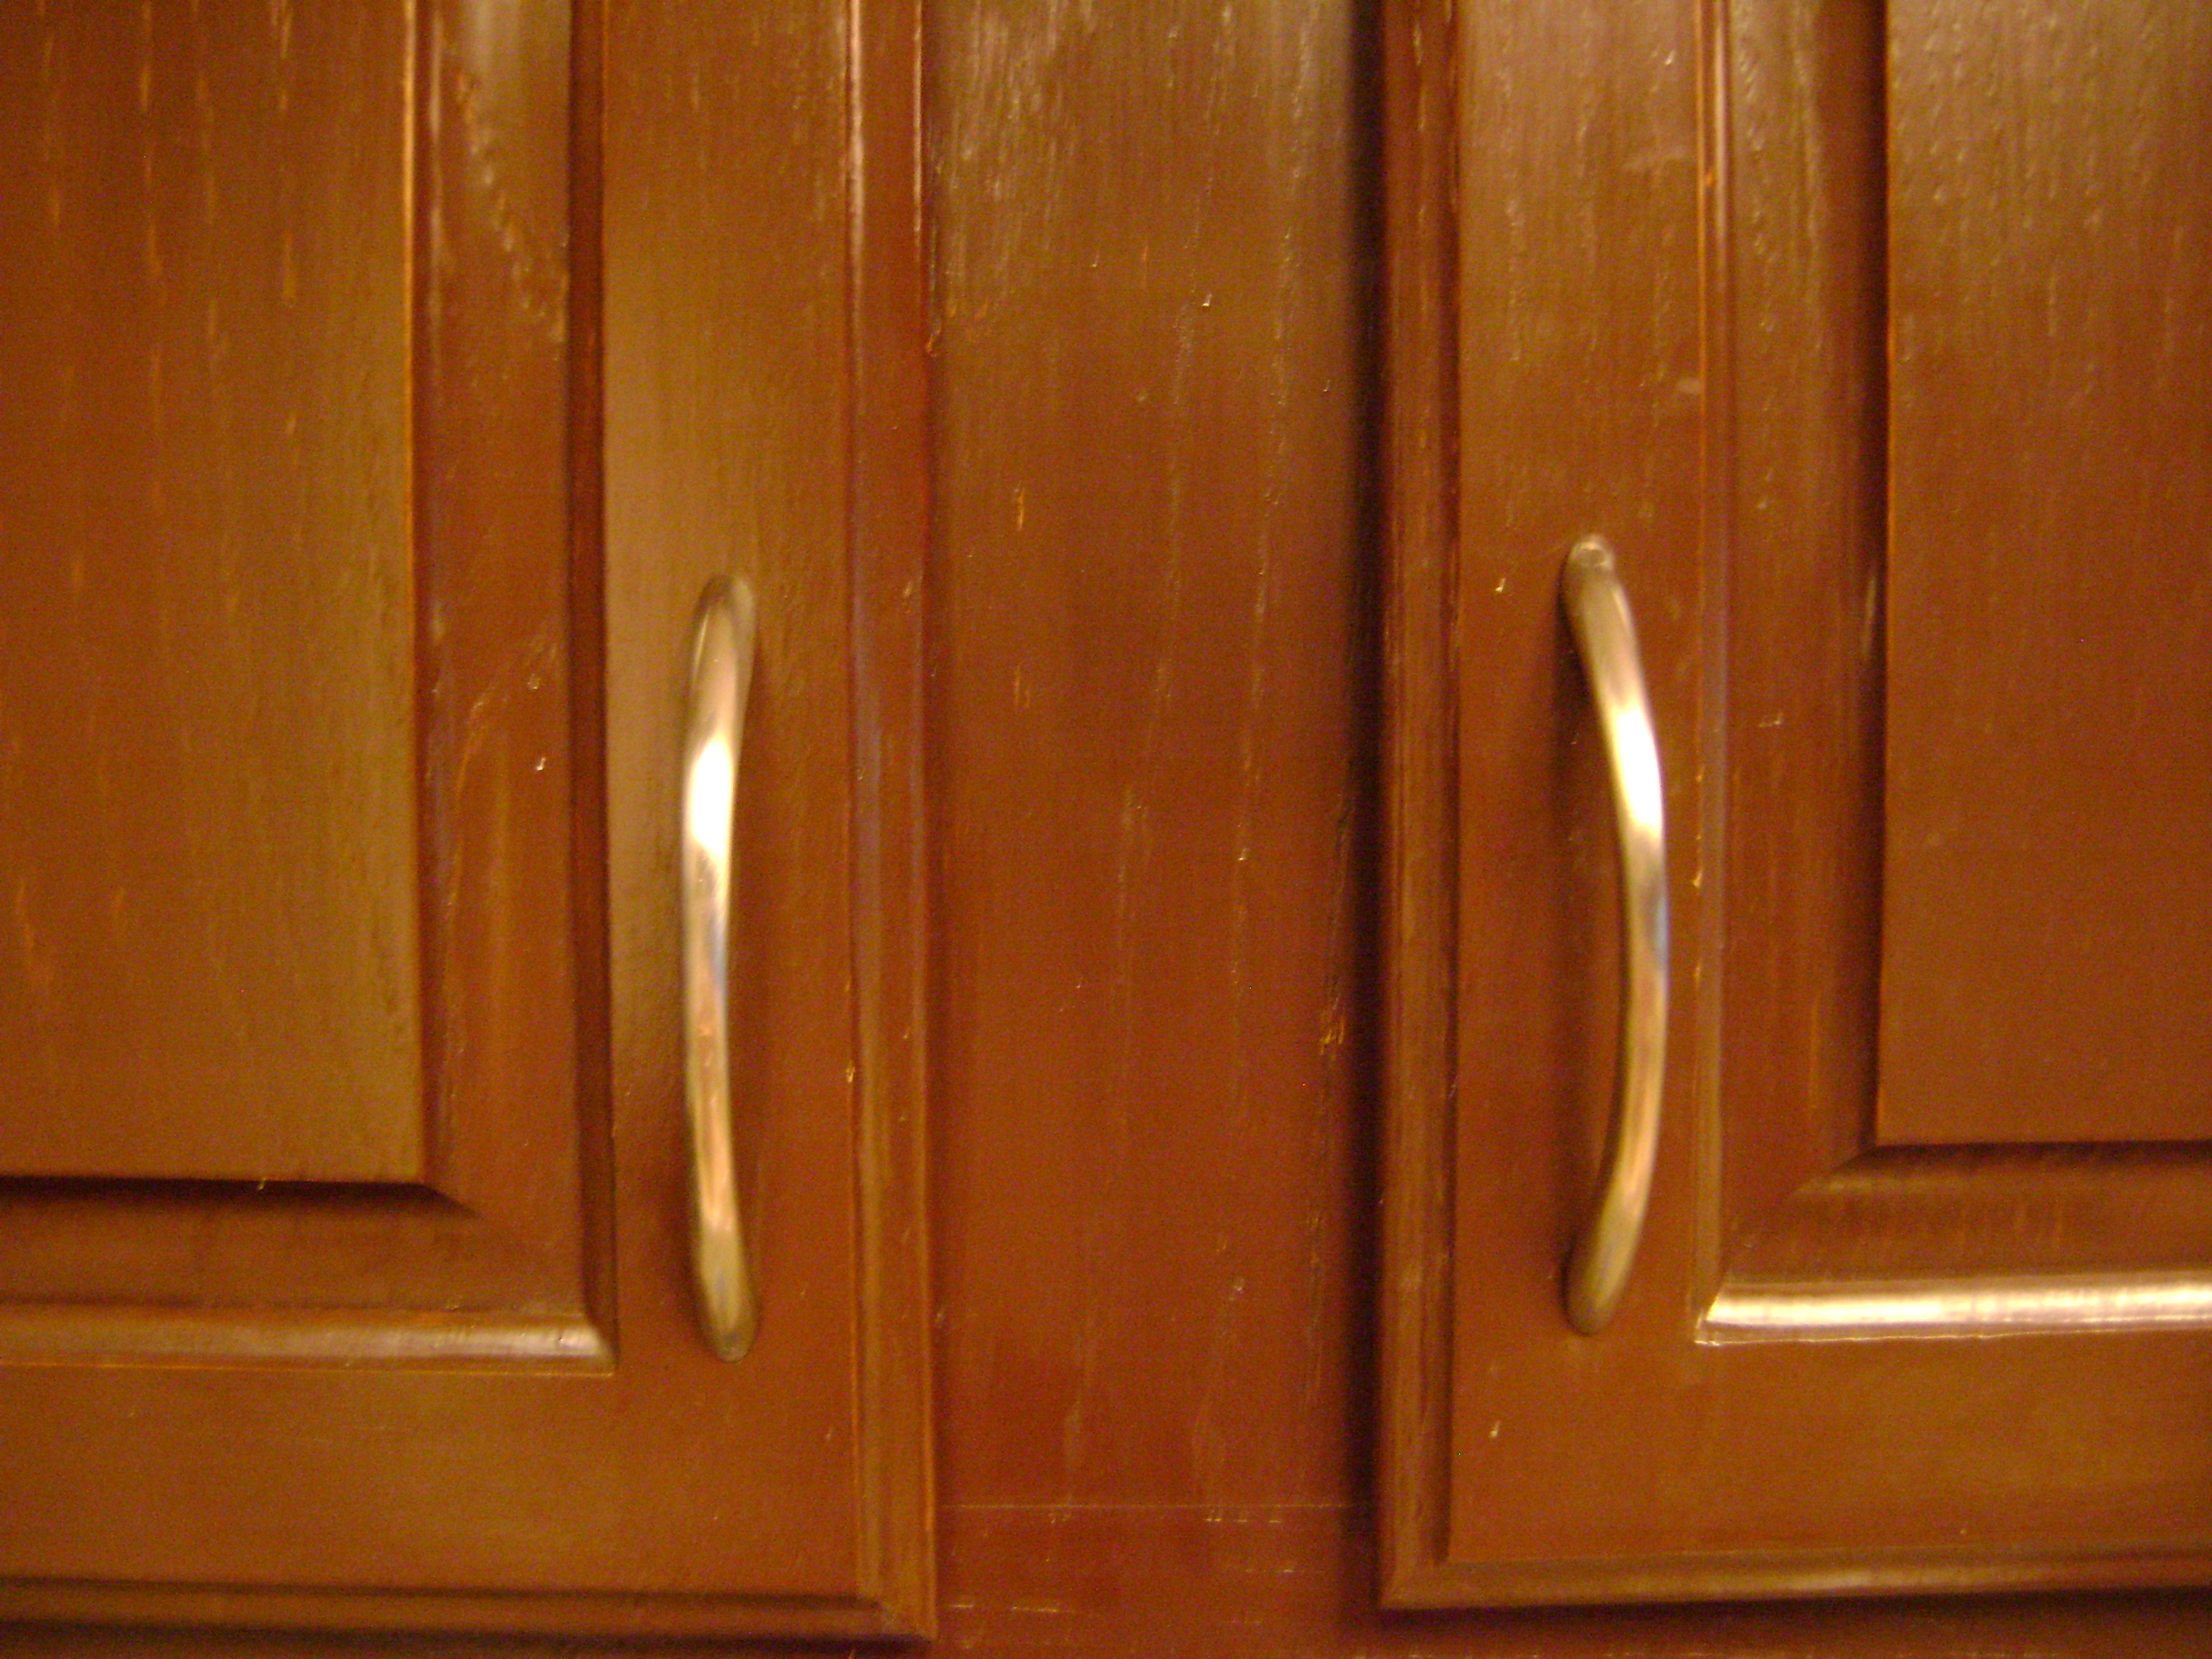 Cabinet Hardware How To Install | A Girl Can Do It